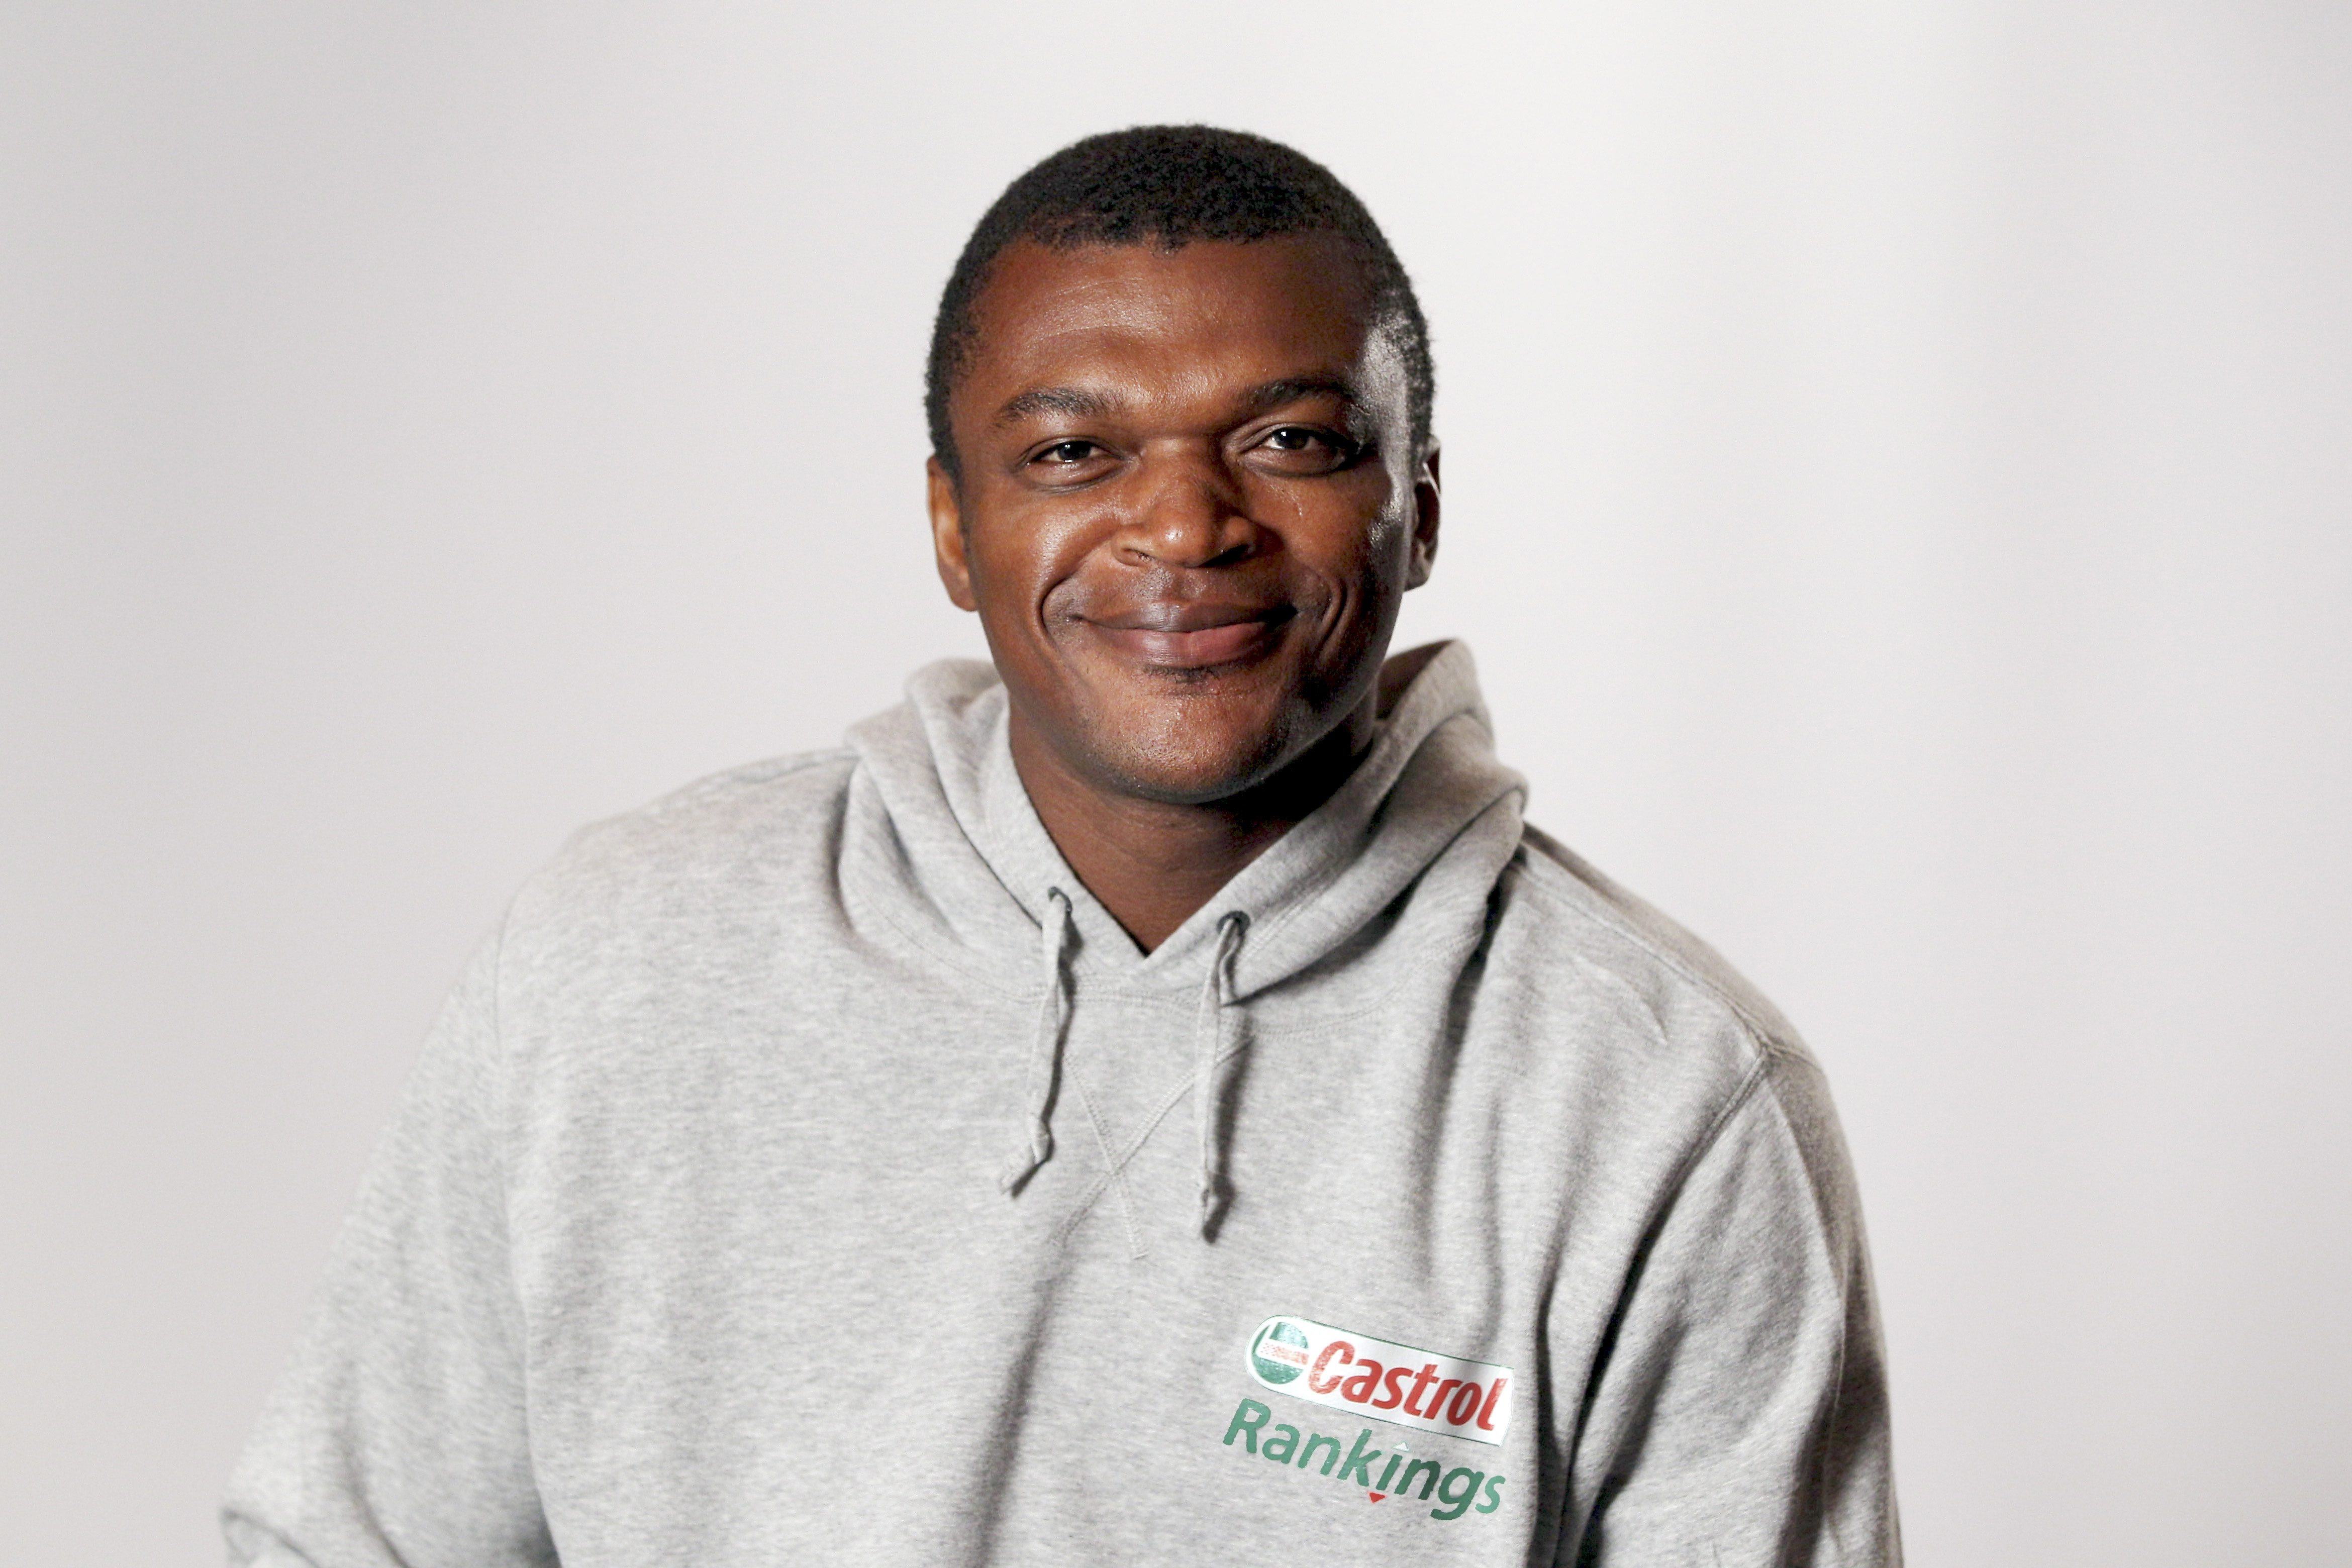 With no infrastructure and proper structures, I cannot become Kotoko CEO- Marcel Desailly